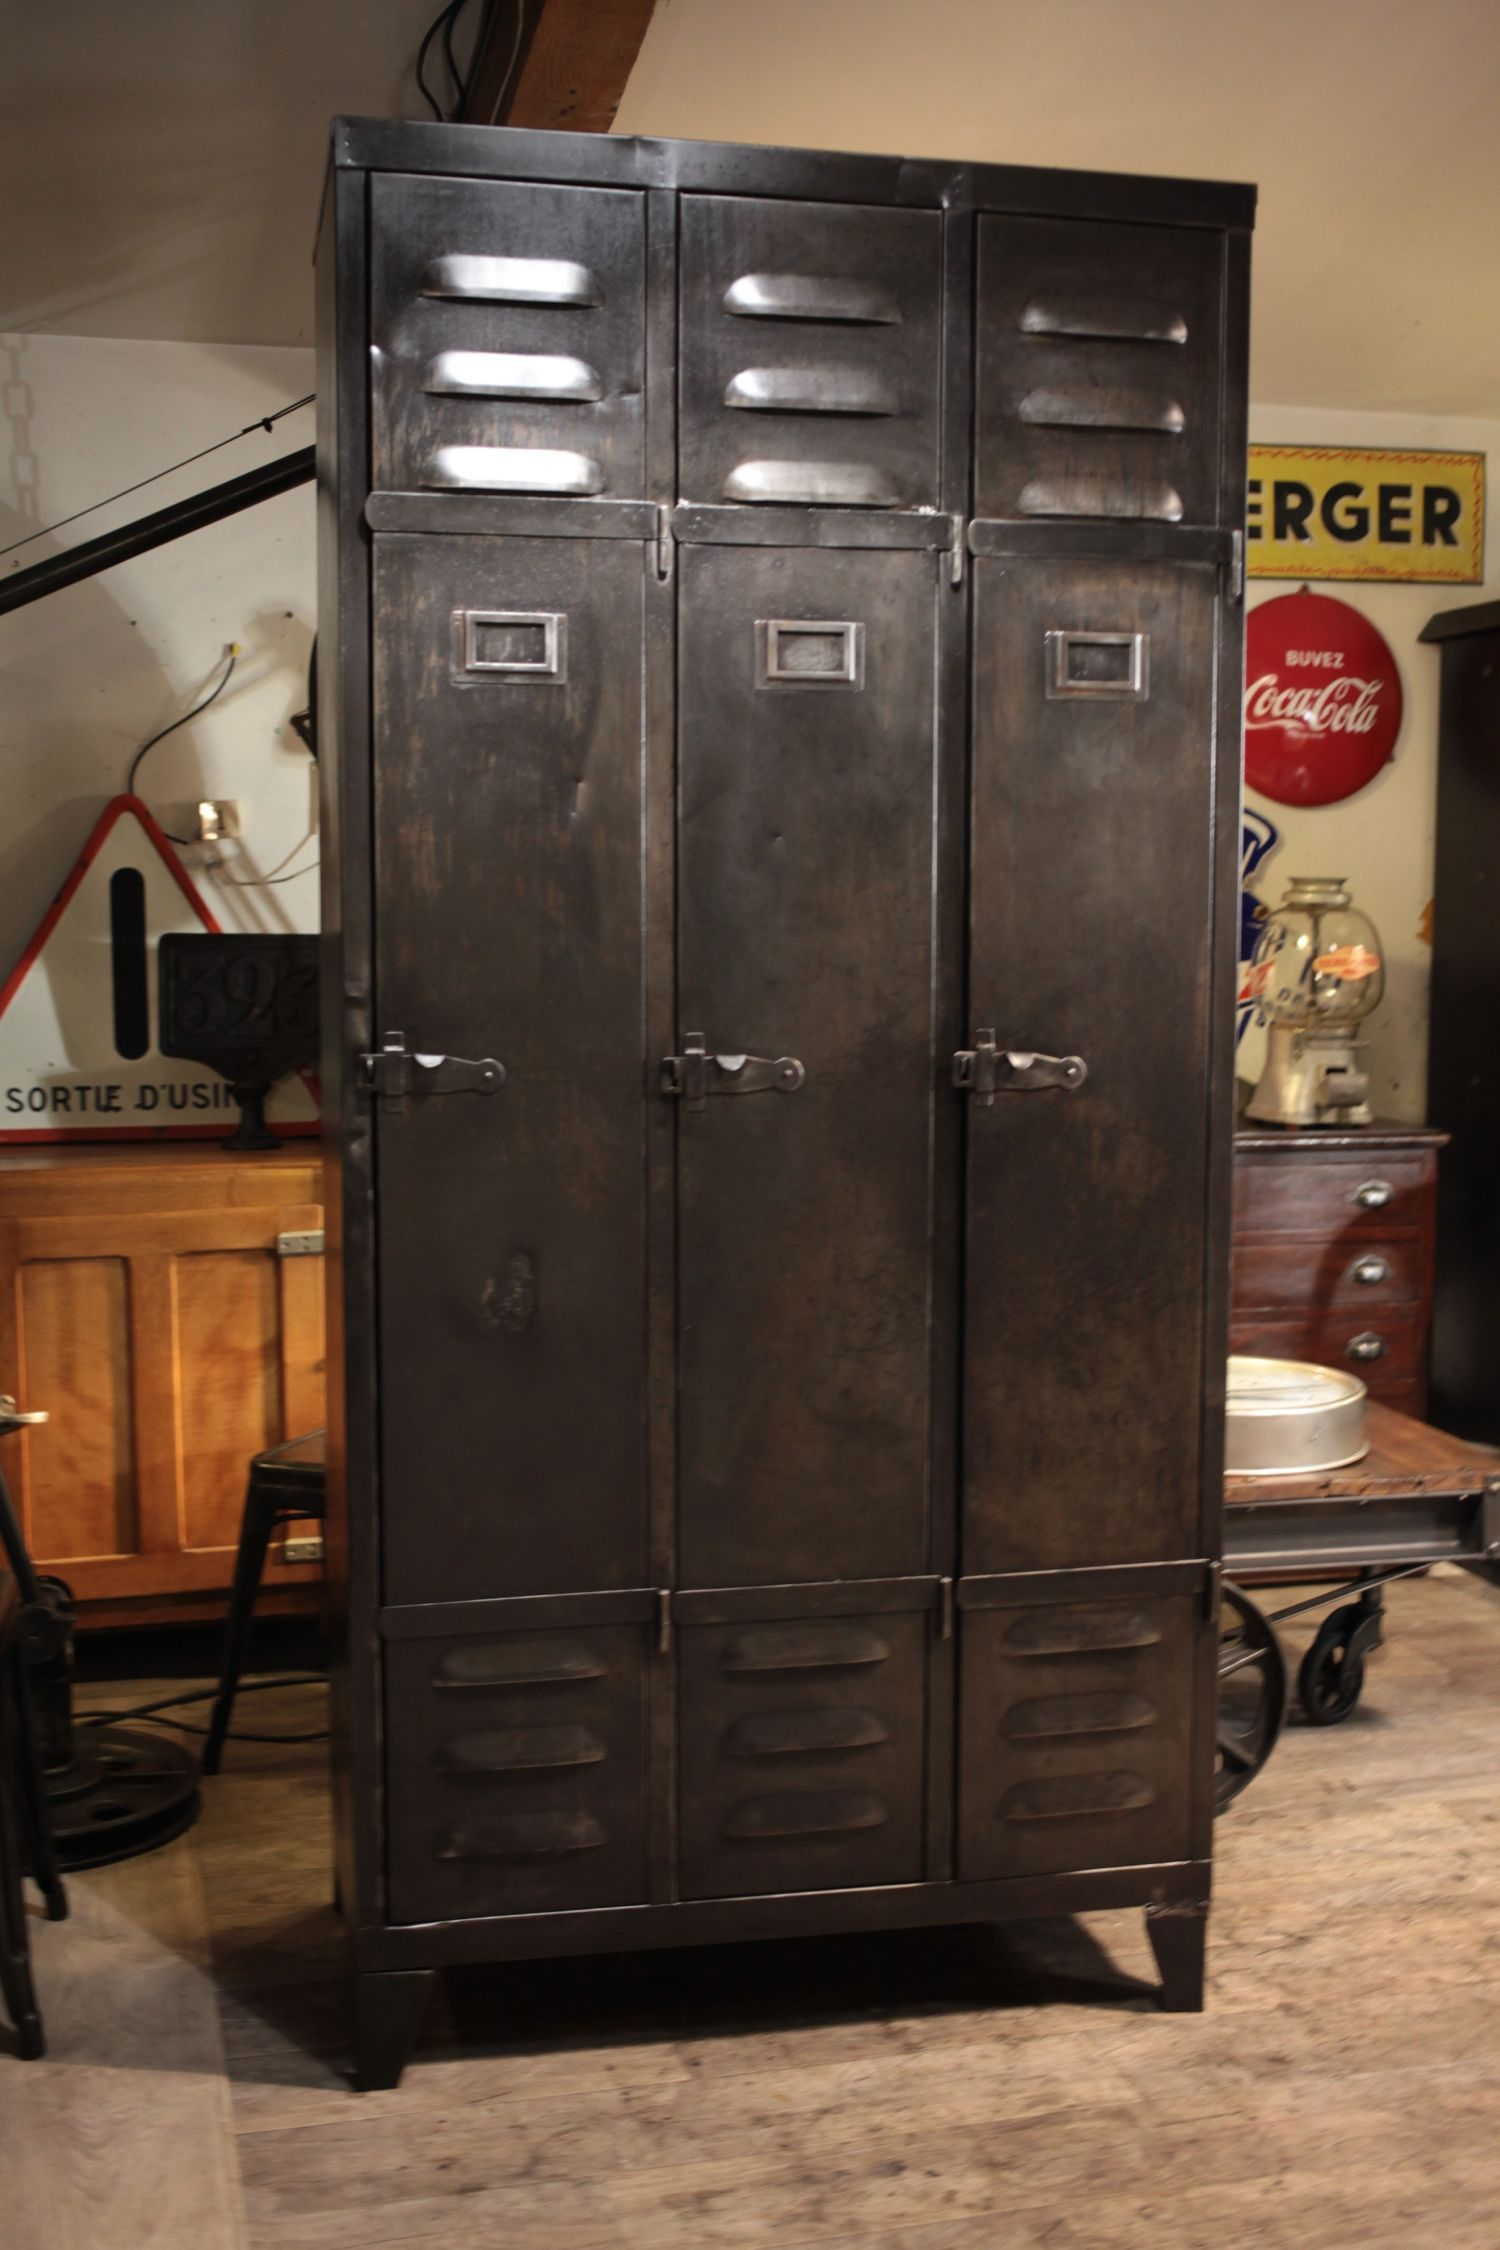 meuble industriel ancien deco loft | Metal art and Design ...